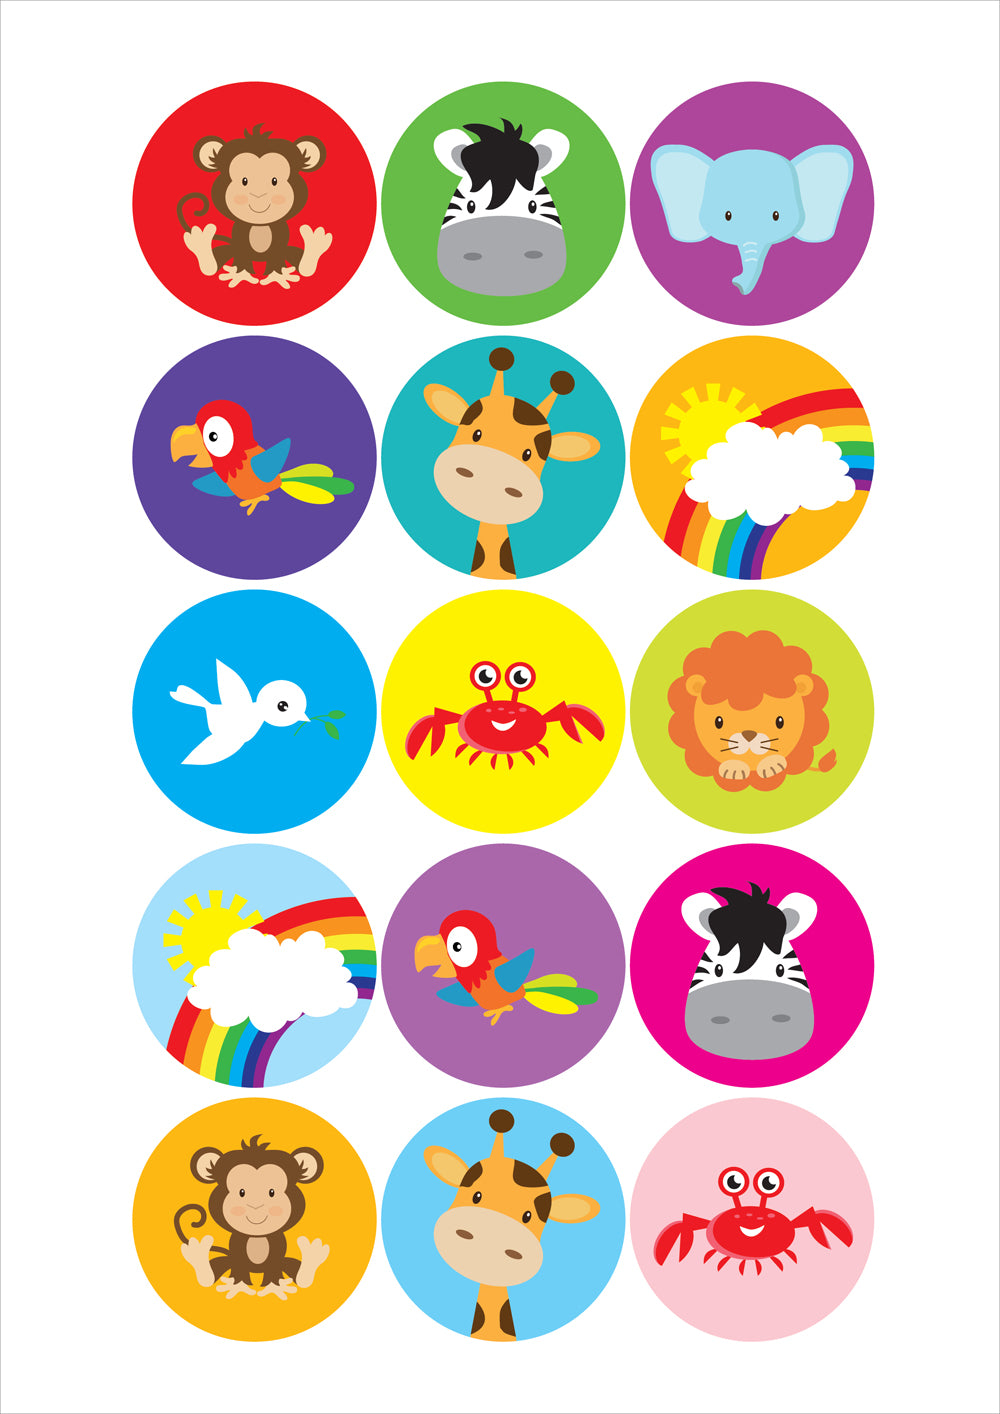 Noah Ark Animals Sticker SheetNoah Ark Animals Sticker Sheet